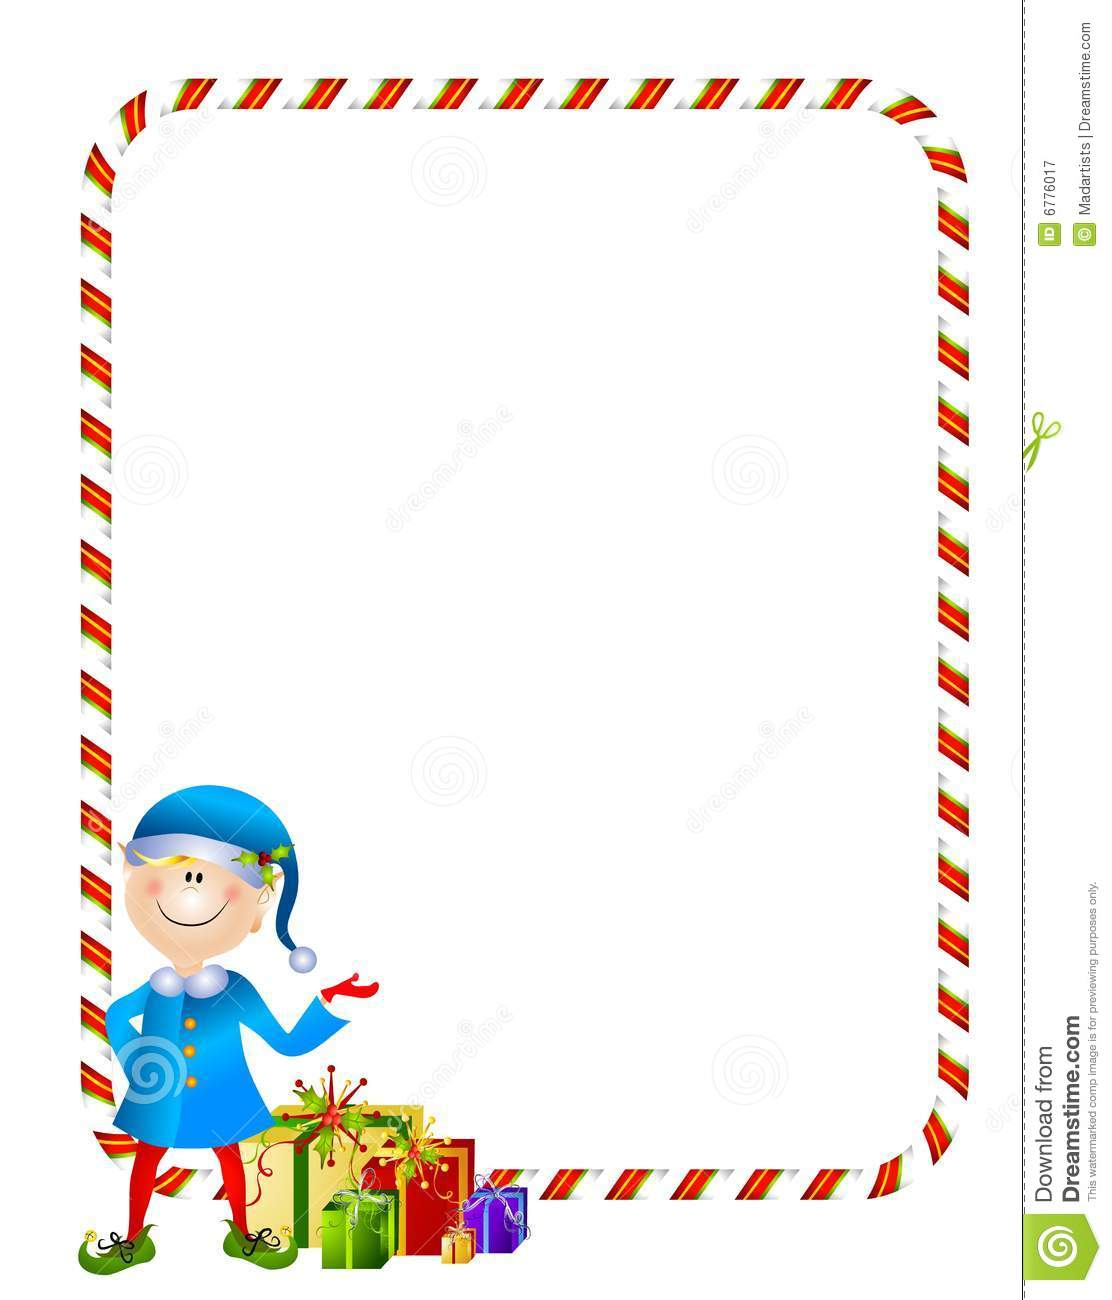 Xmas Elf with Gifts Border stock vector. Illustration of presenting.